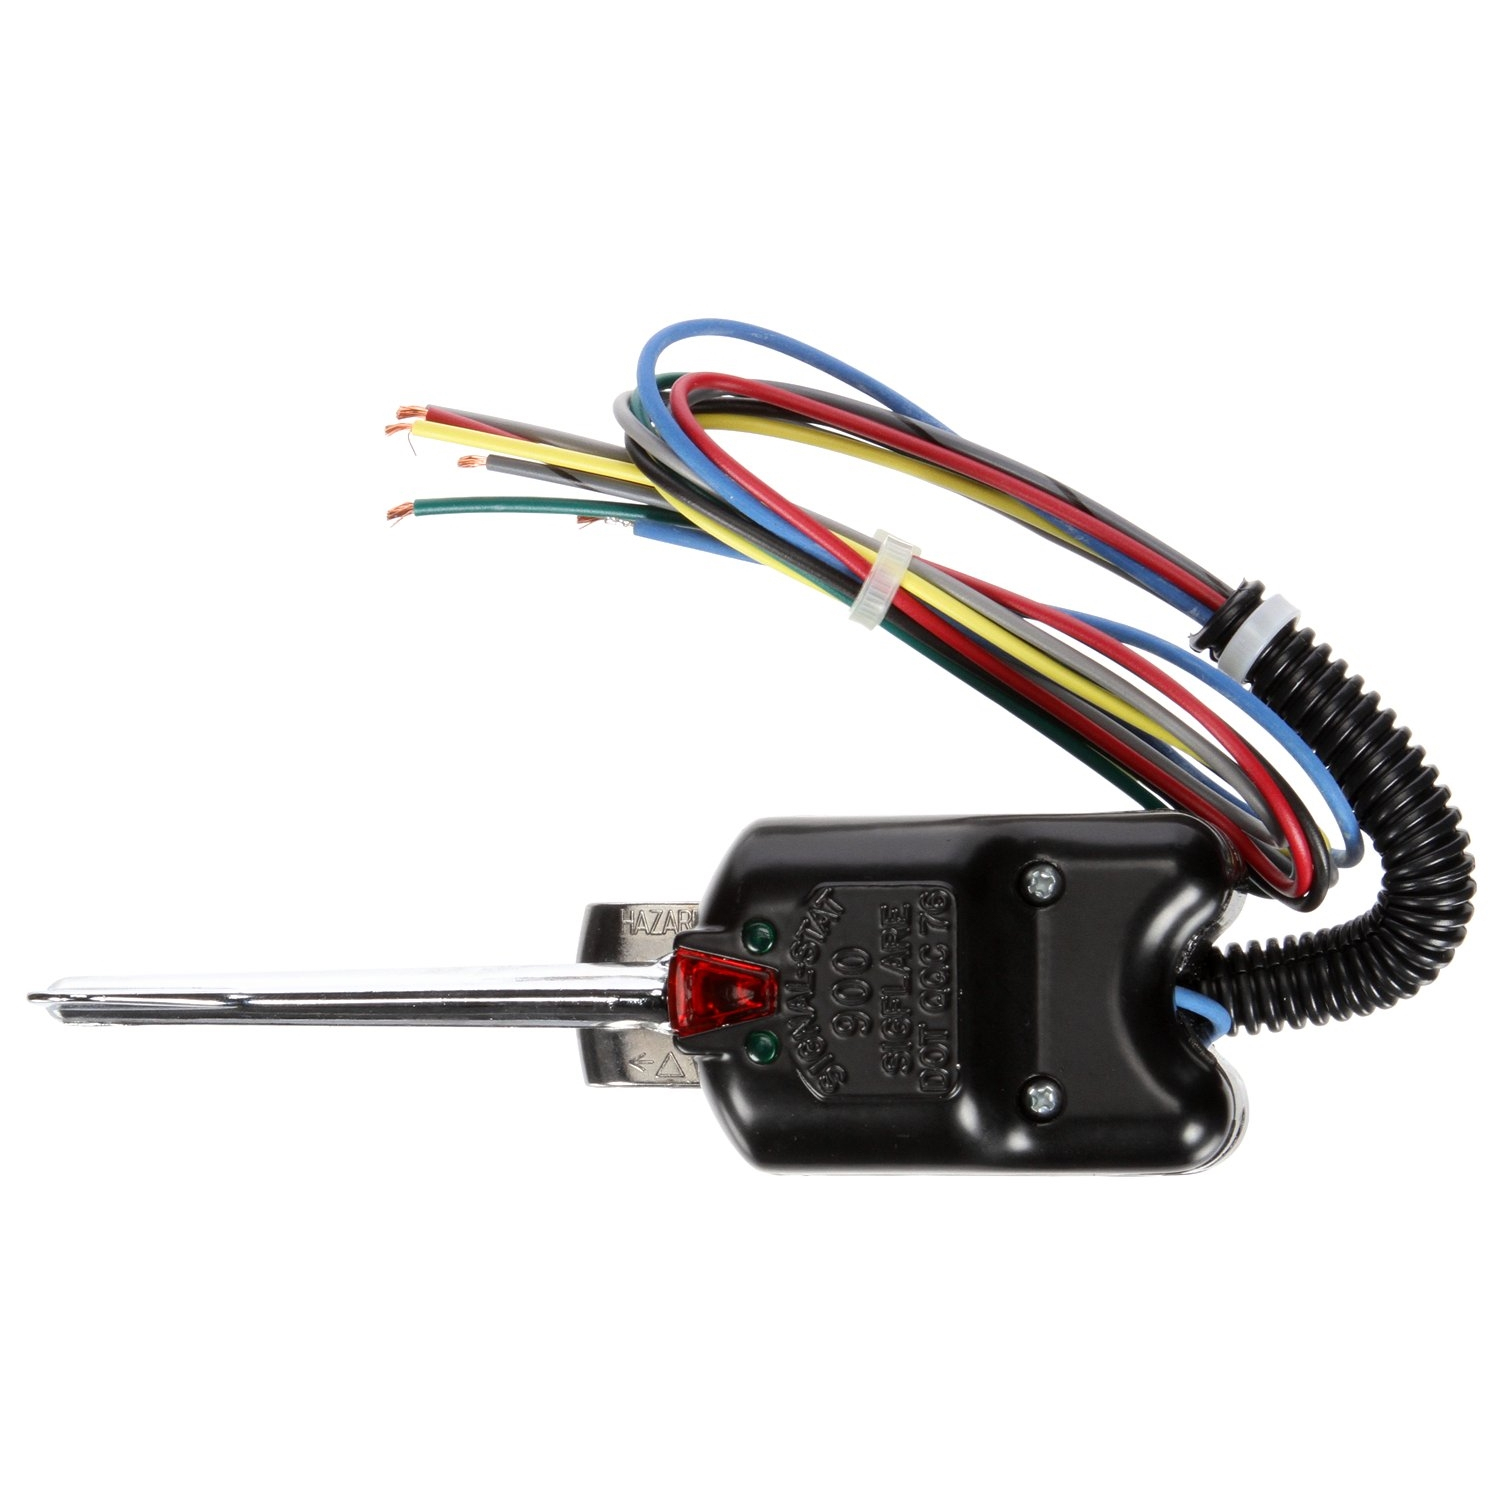 7 Wire Harness, Turn Signal Switch, Black Polycarbonate | Truck-Lite - Truck Lite 900 Wiring Diagram